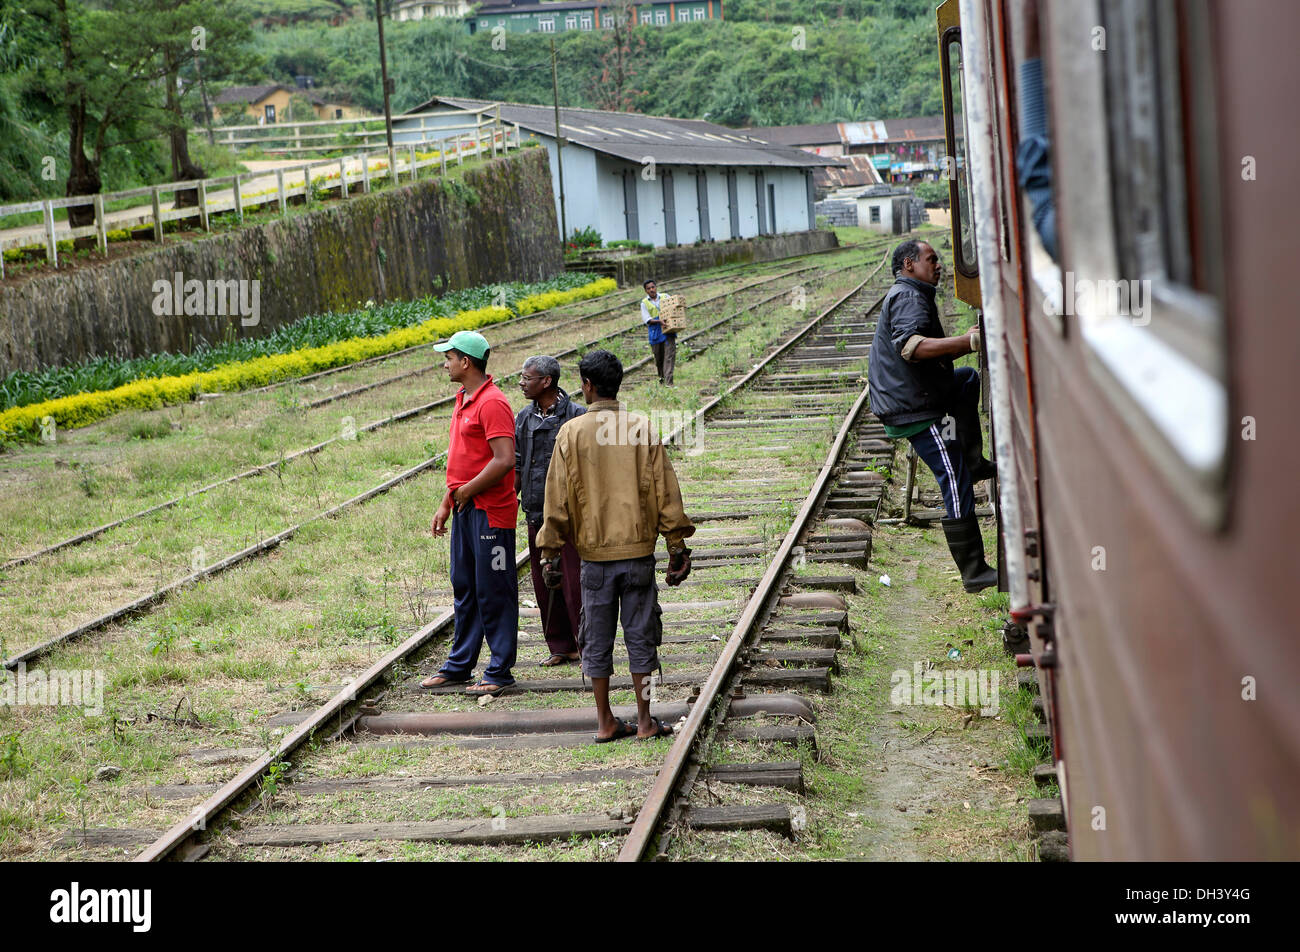 Men standing on train tracks at Nanu Oya train station in the Sri Lanka highlands - Stock Image